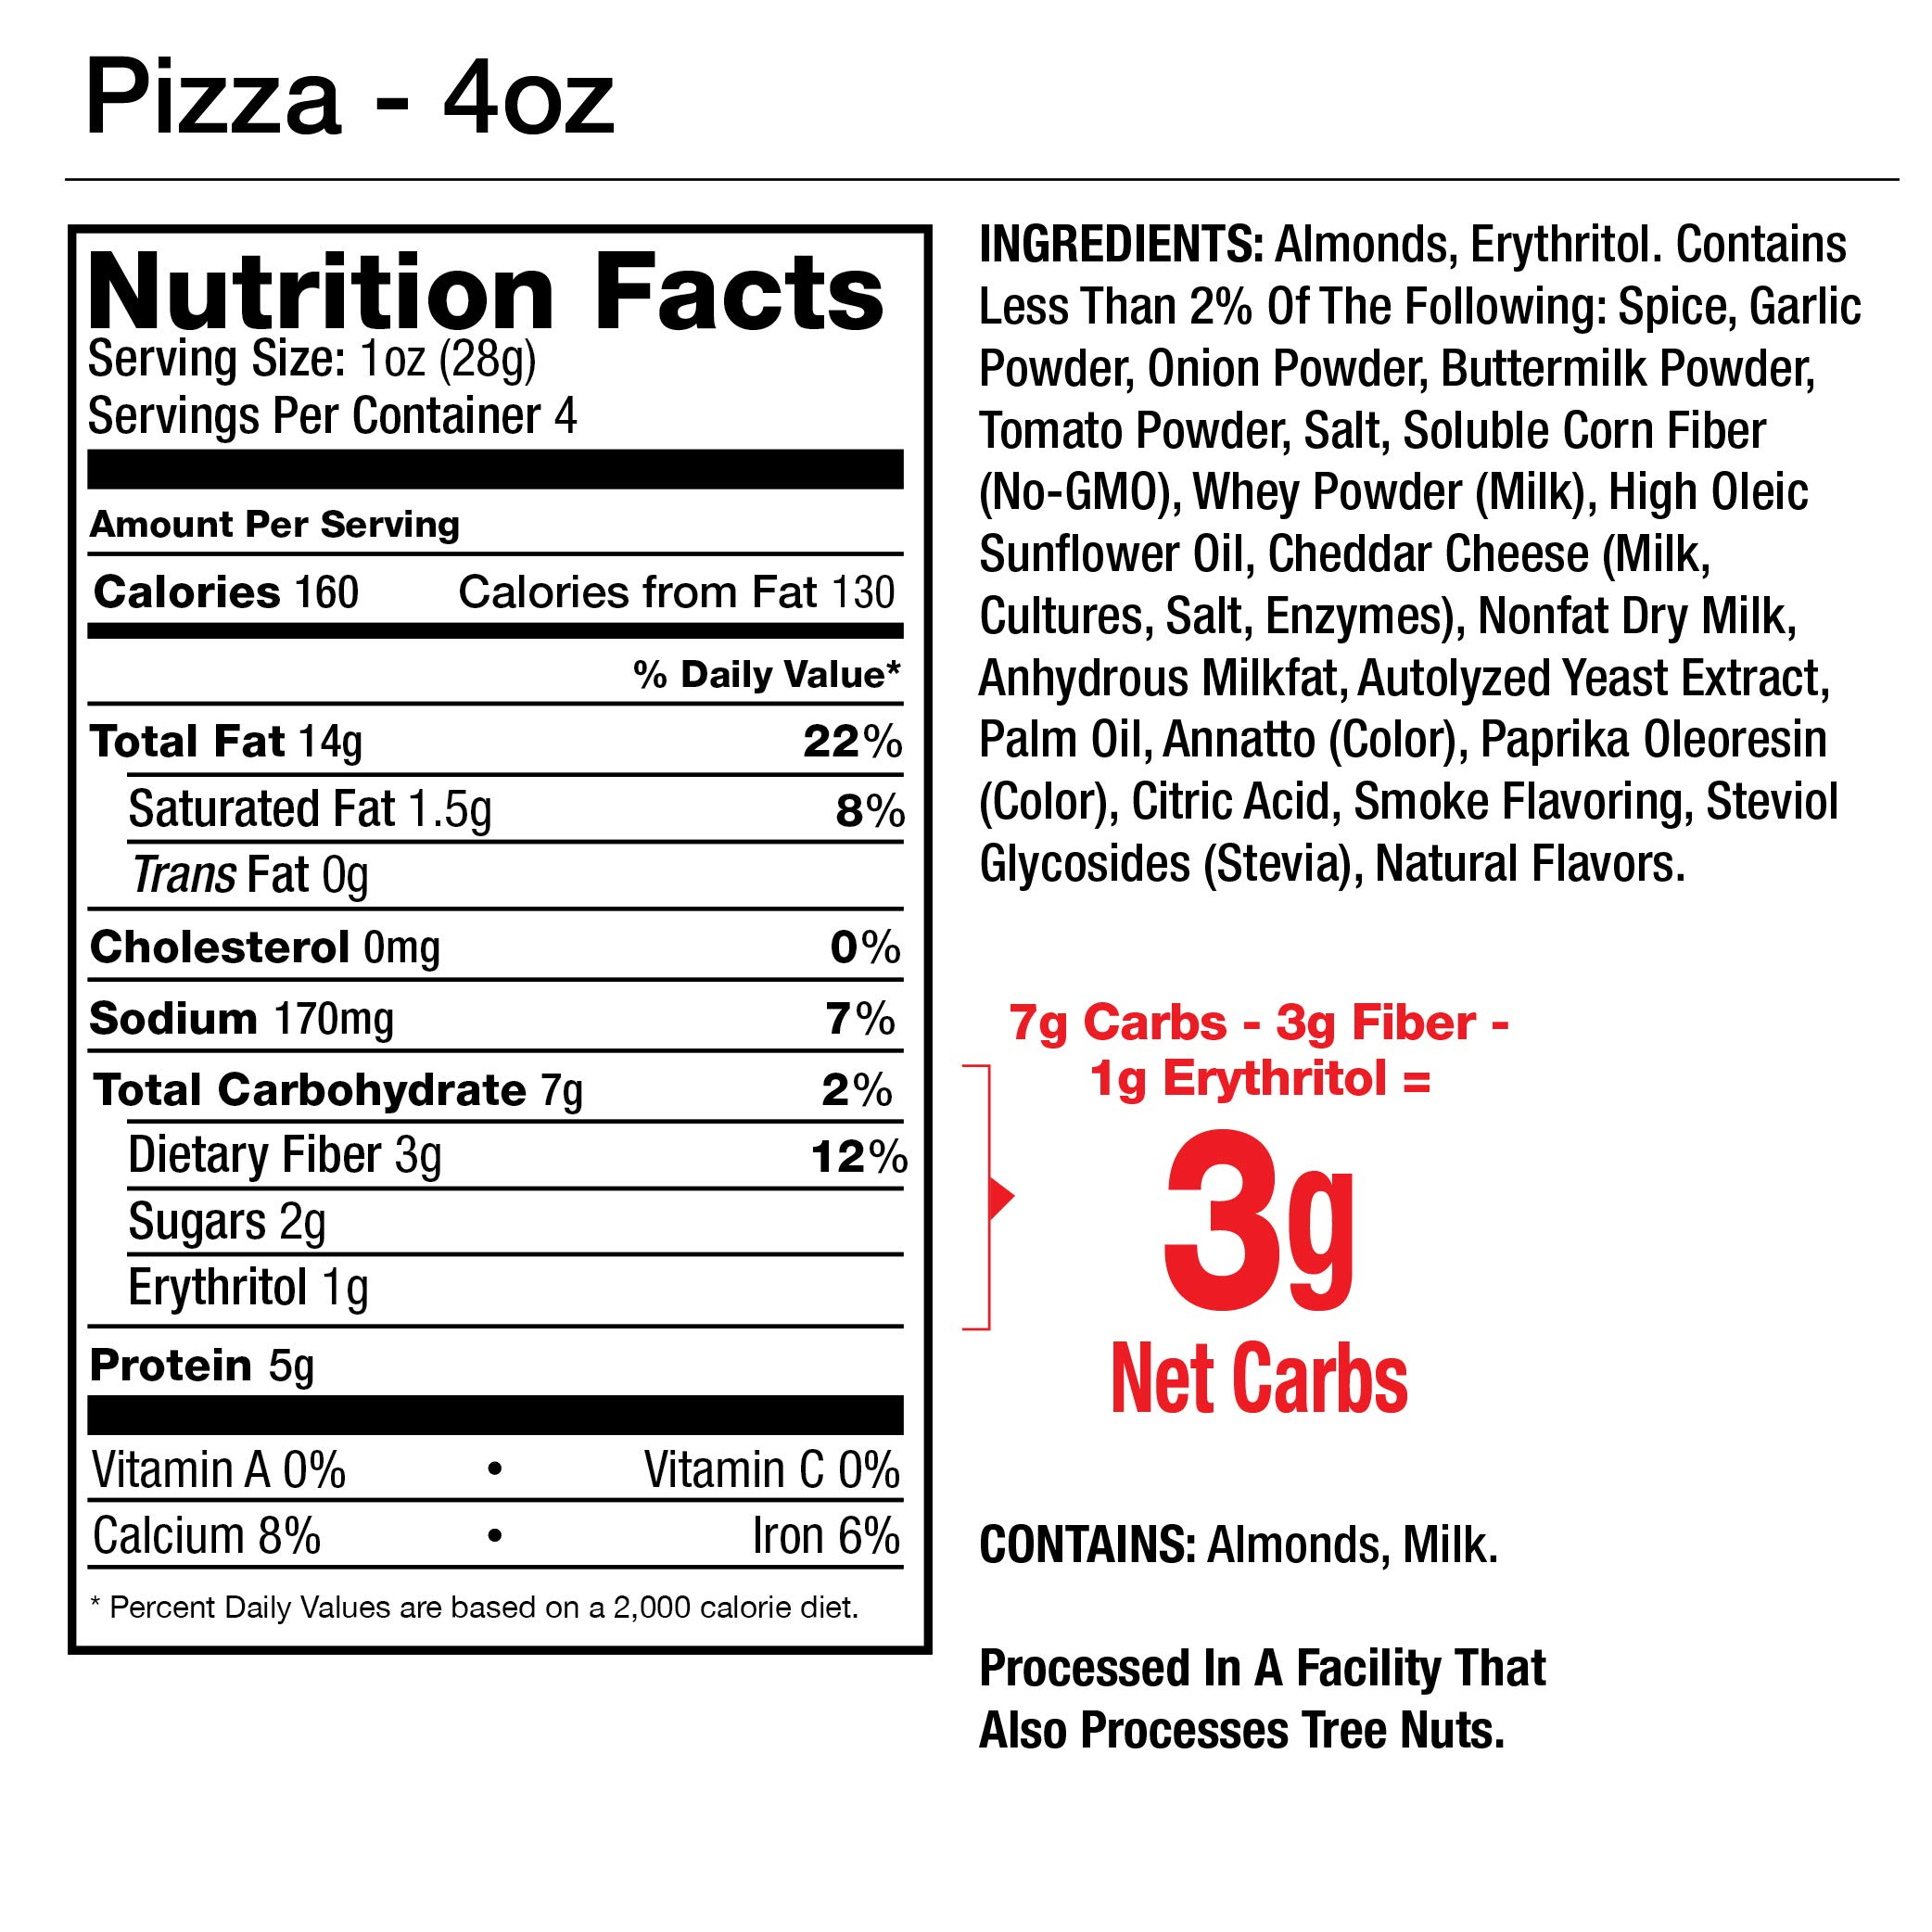 Legendary Foods Seasoned Almonds | Keto Friendly, Low Carb, Good Protein & Fat | Pizza Flavored (4oz, Pack of 4) by Legendary Foods (Image #3)